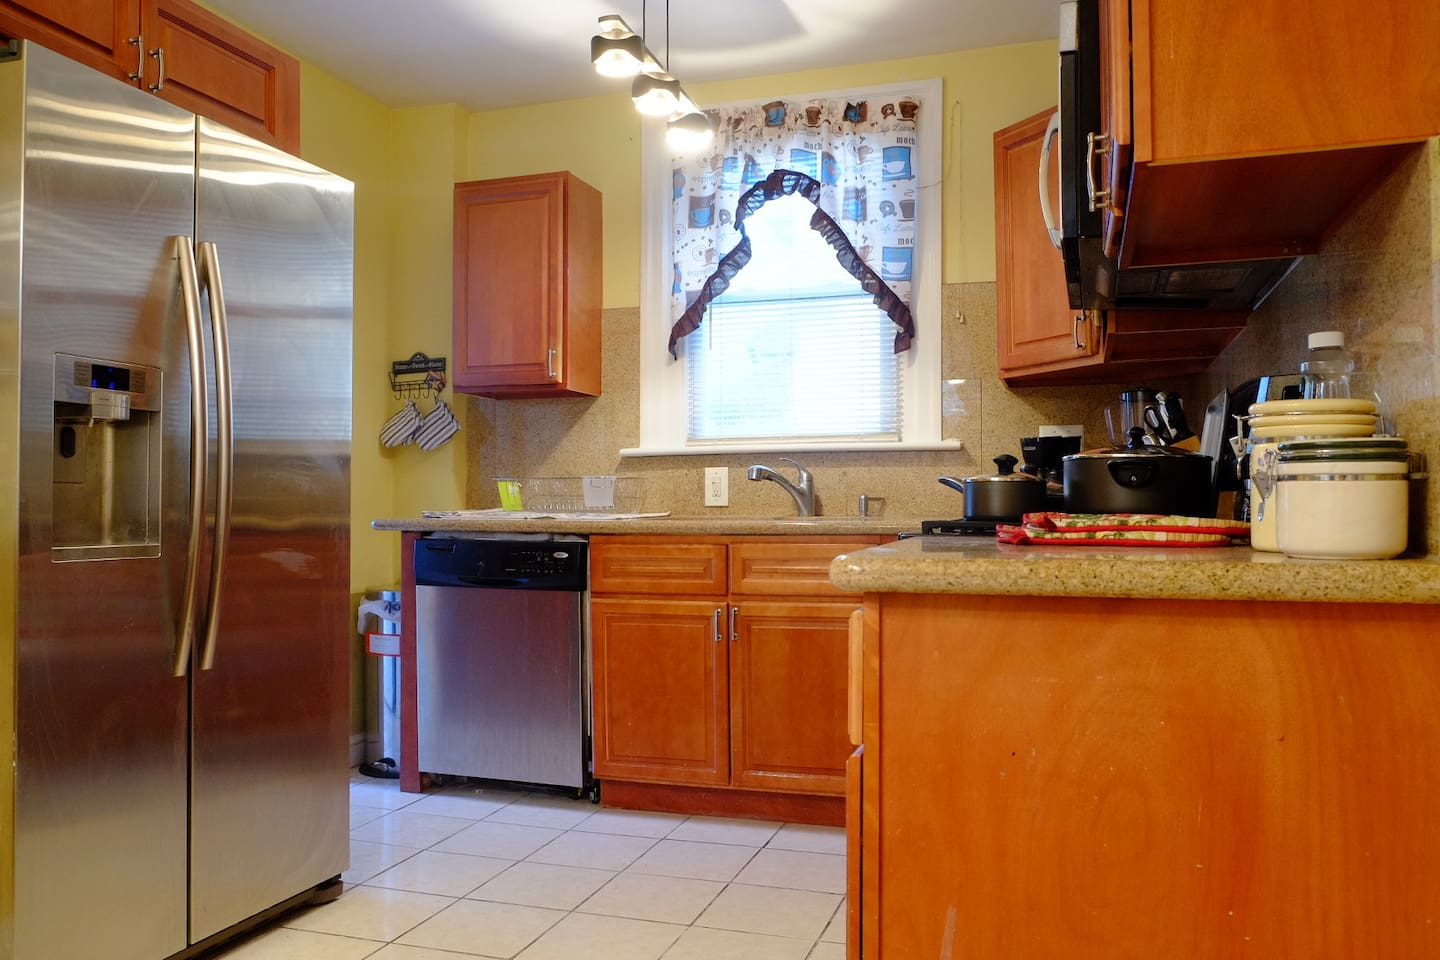 Fully accessible kitchen